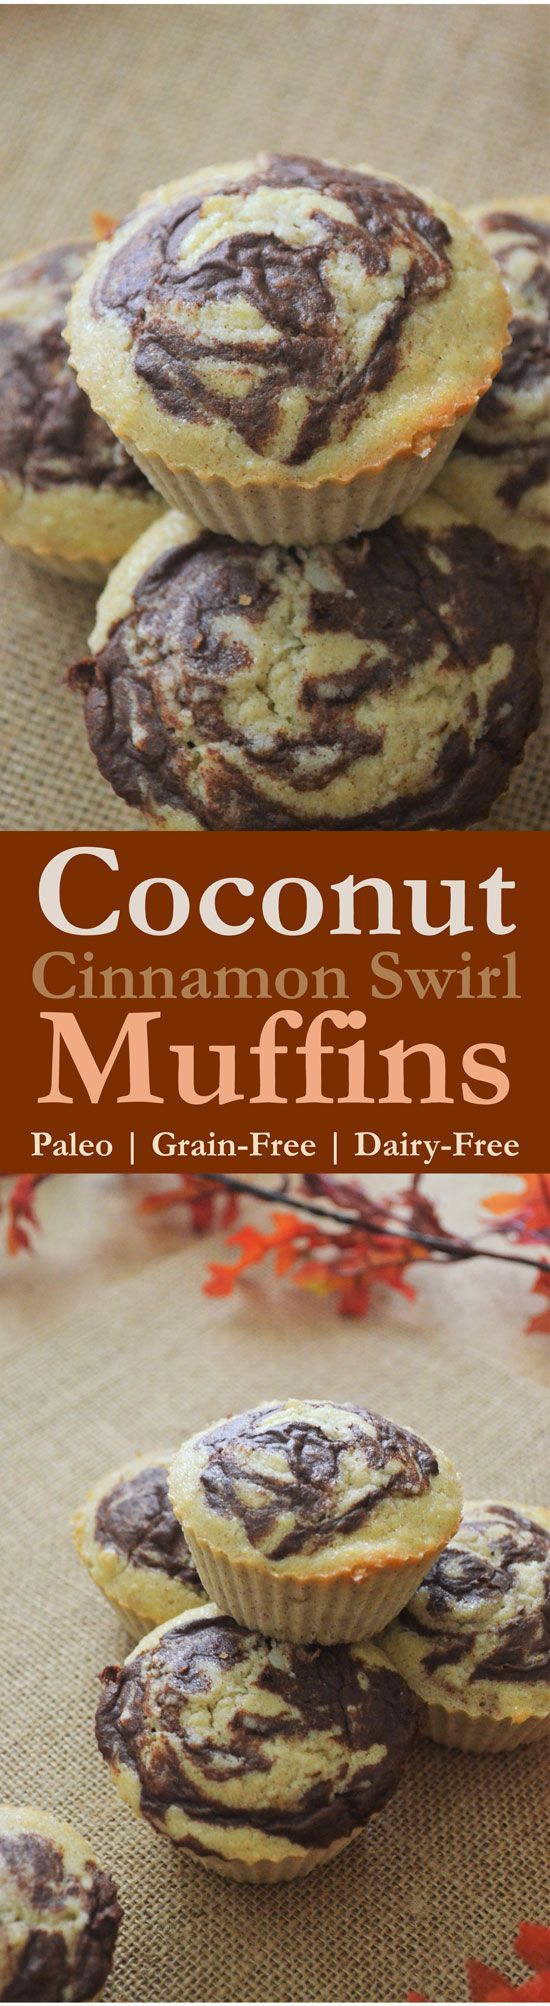 These delicious coconut cinnamon swirl muffins are so tasty and filling and they're perfect as an on-the-go breakfast. Plus, they take less than 10 minutes to whip up, and less than a half hour to bake. They're Paleo, gluten-free, grain-free, low-carb and dairy-free, and yet still so delicious!!